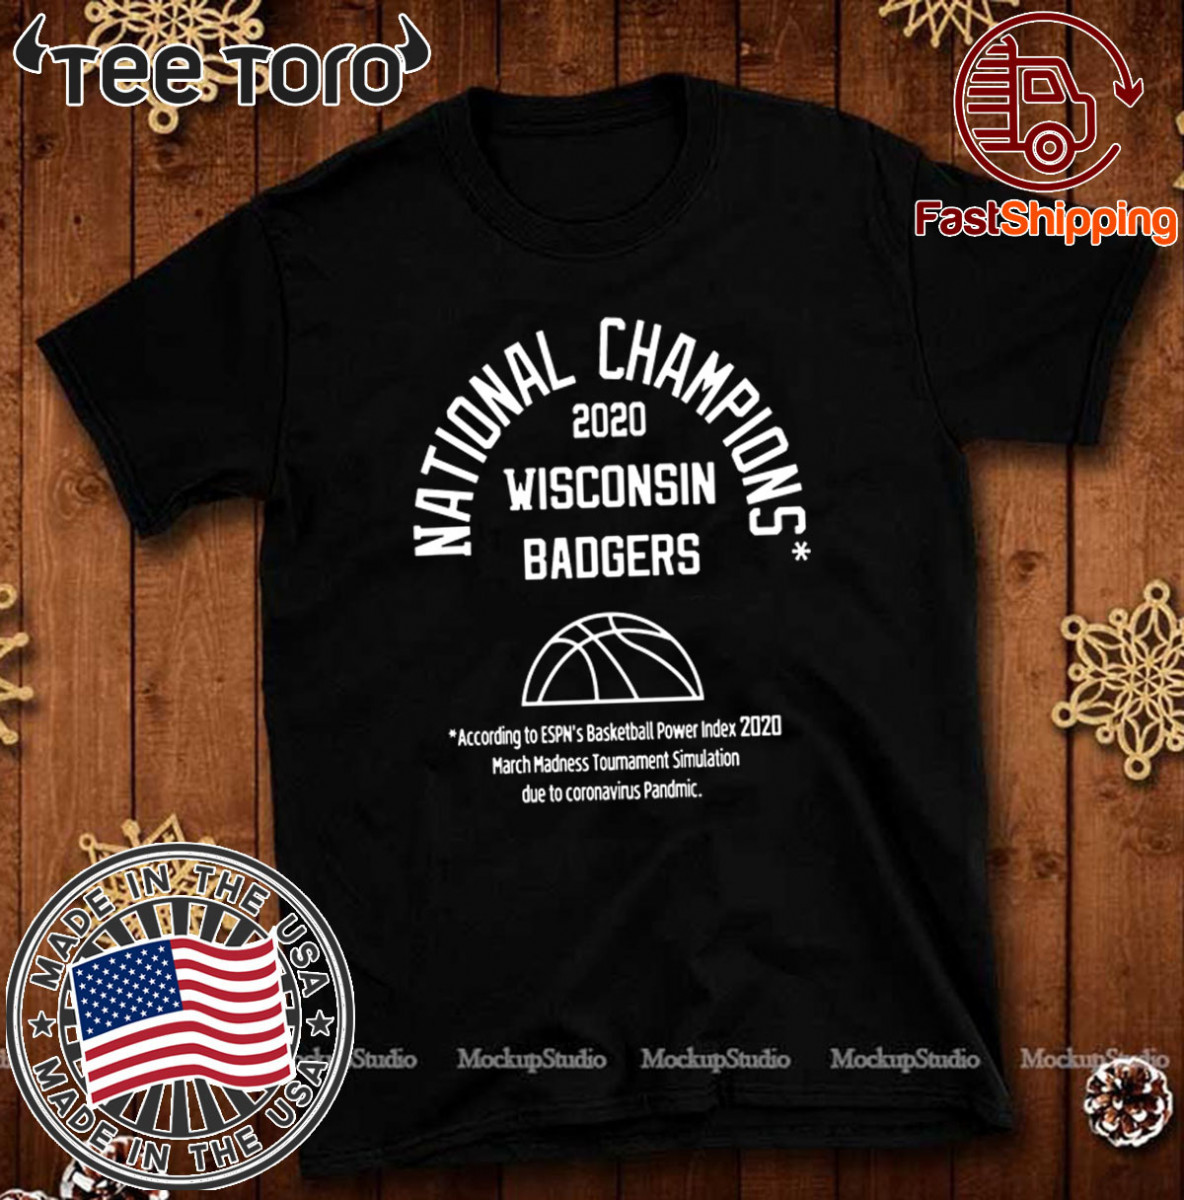 2020 NATIONAL CHAMPIONS WISCONSIN BADGERS SHIRT - LIMITED EDITION